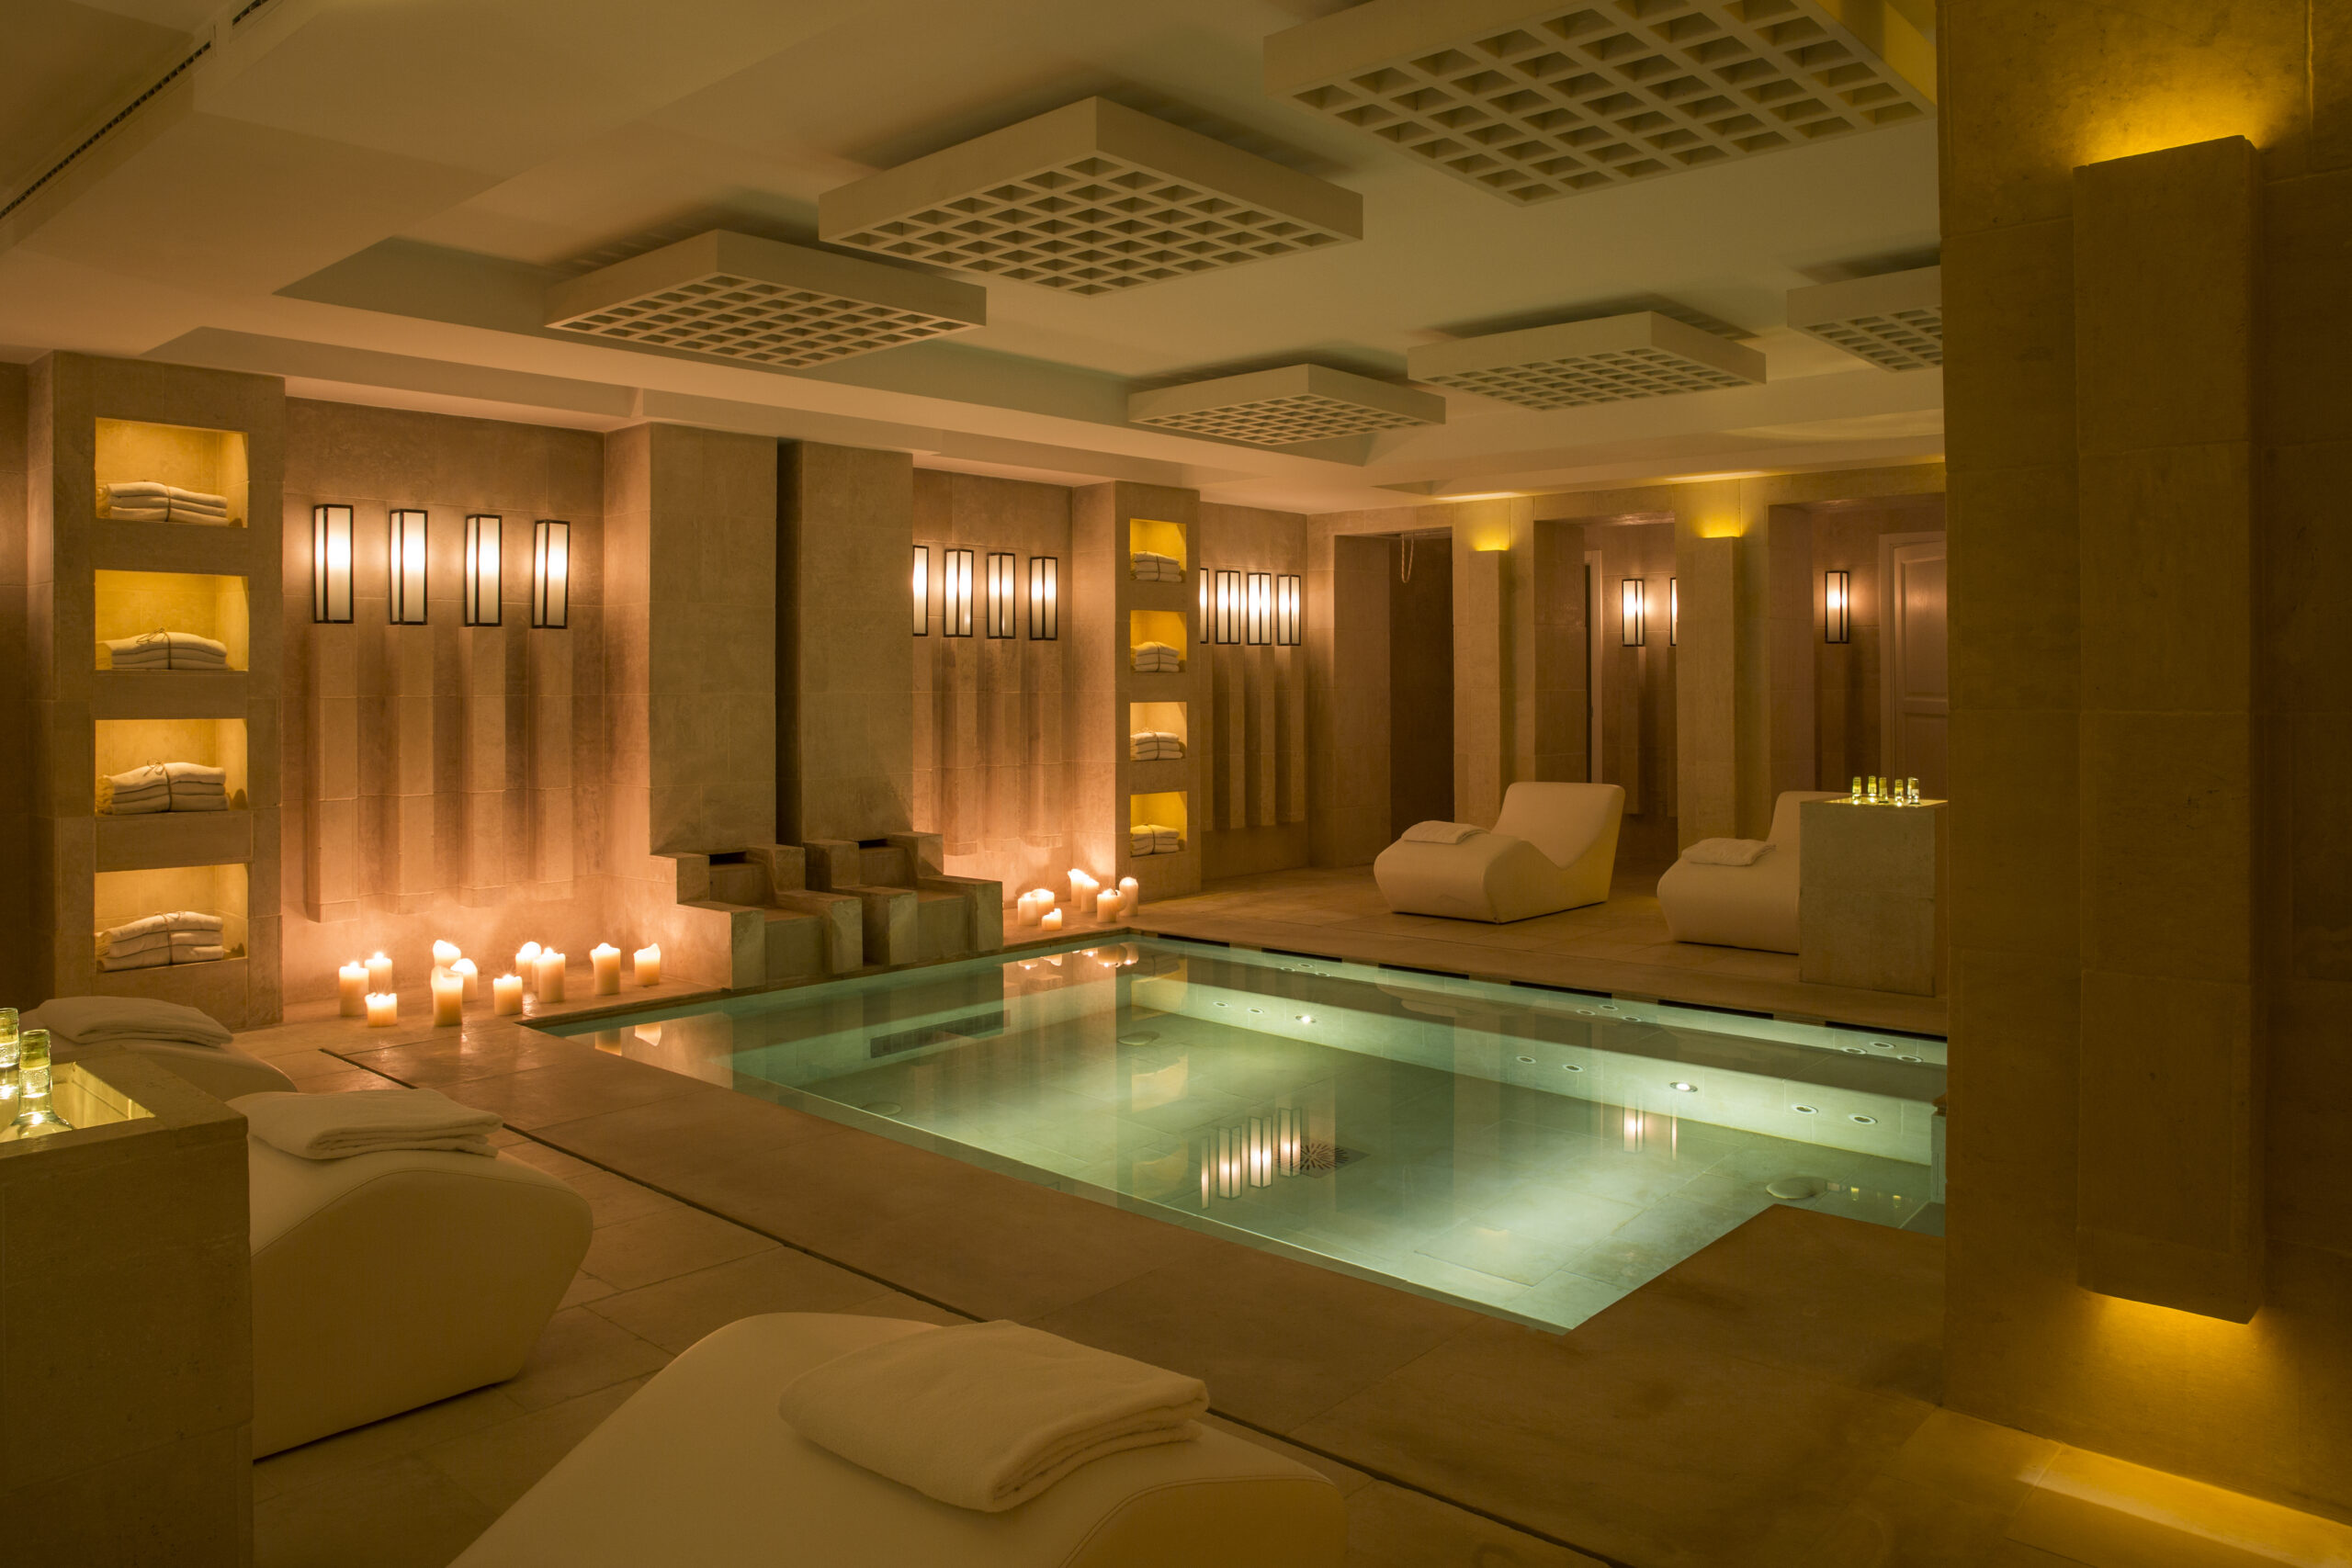 10 Best Retreats to have a Wellness Christmas & New Year - Borgo Egnazia, Italy